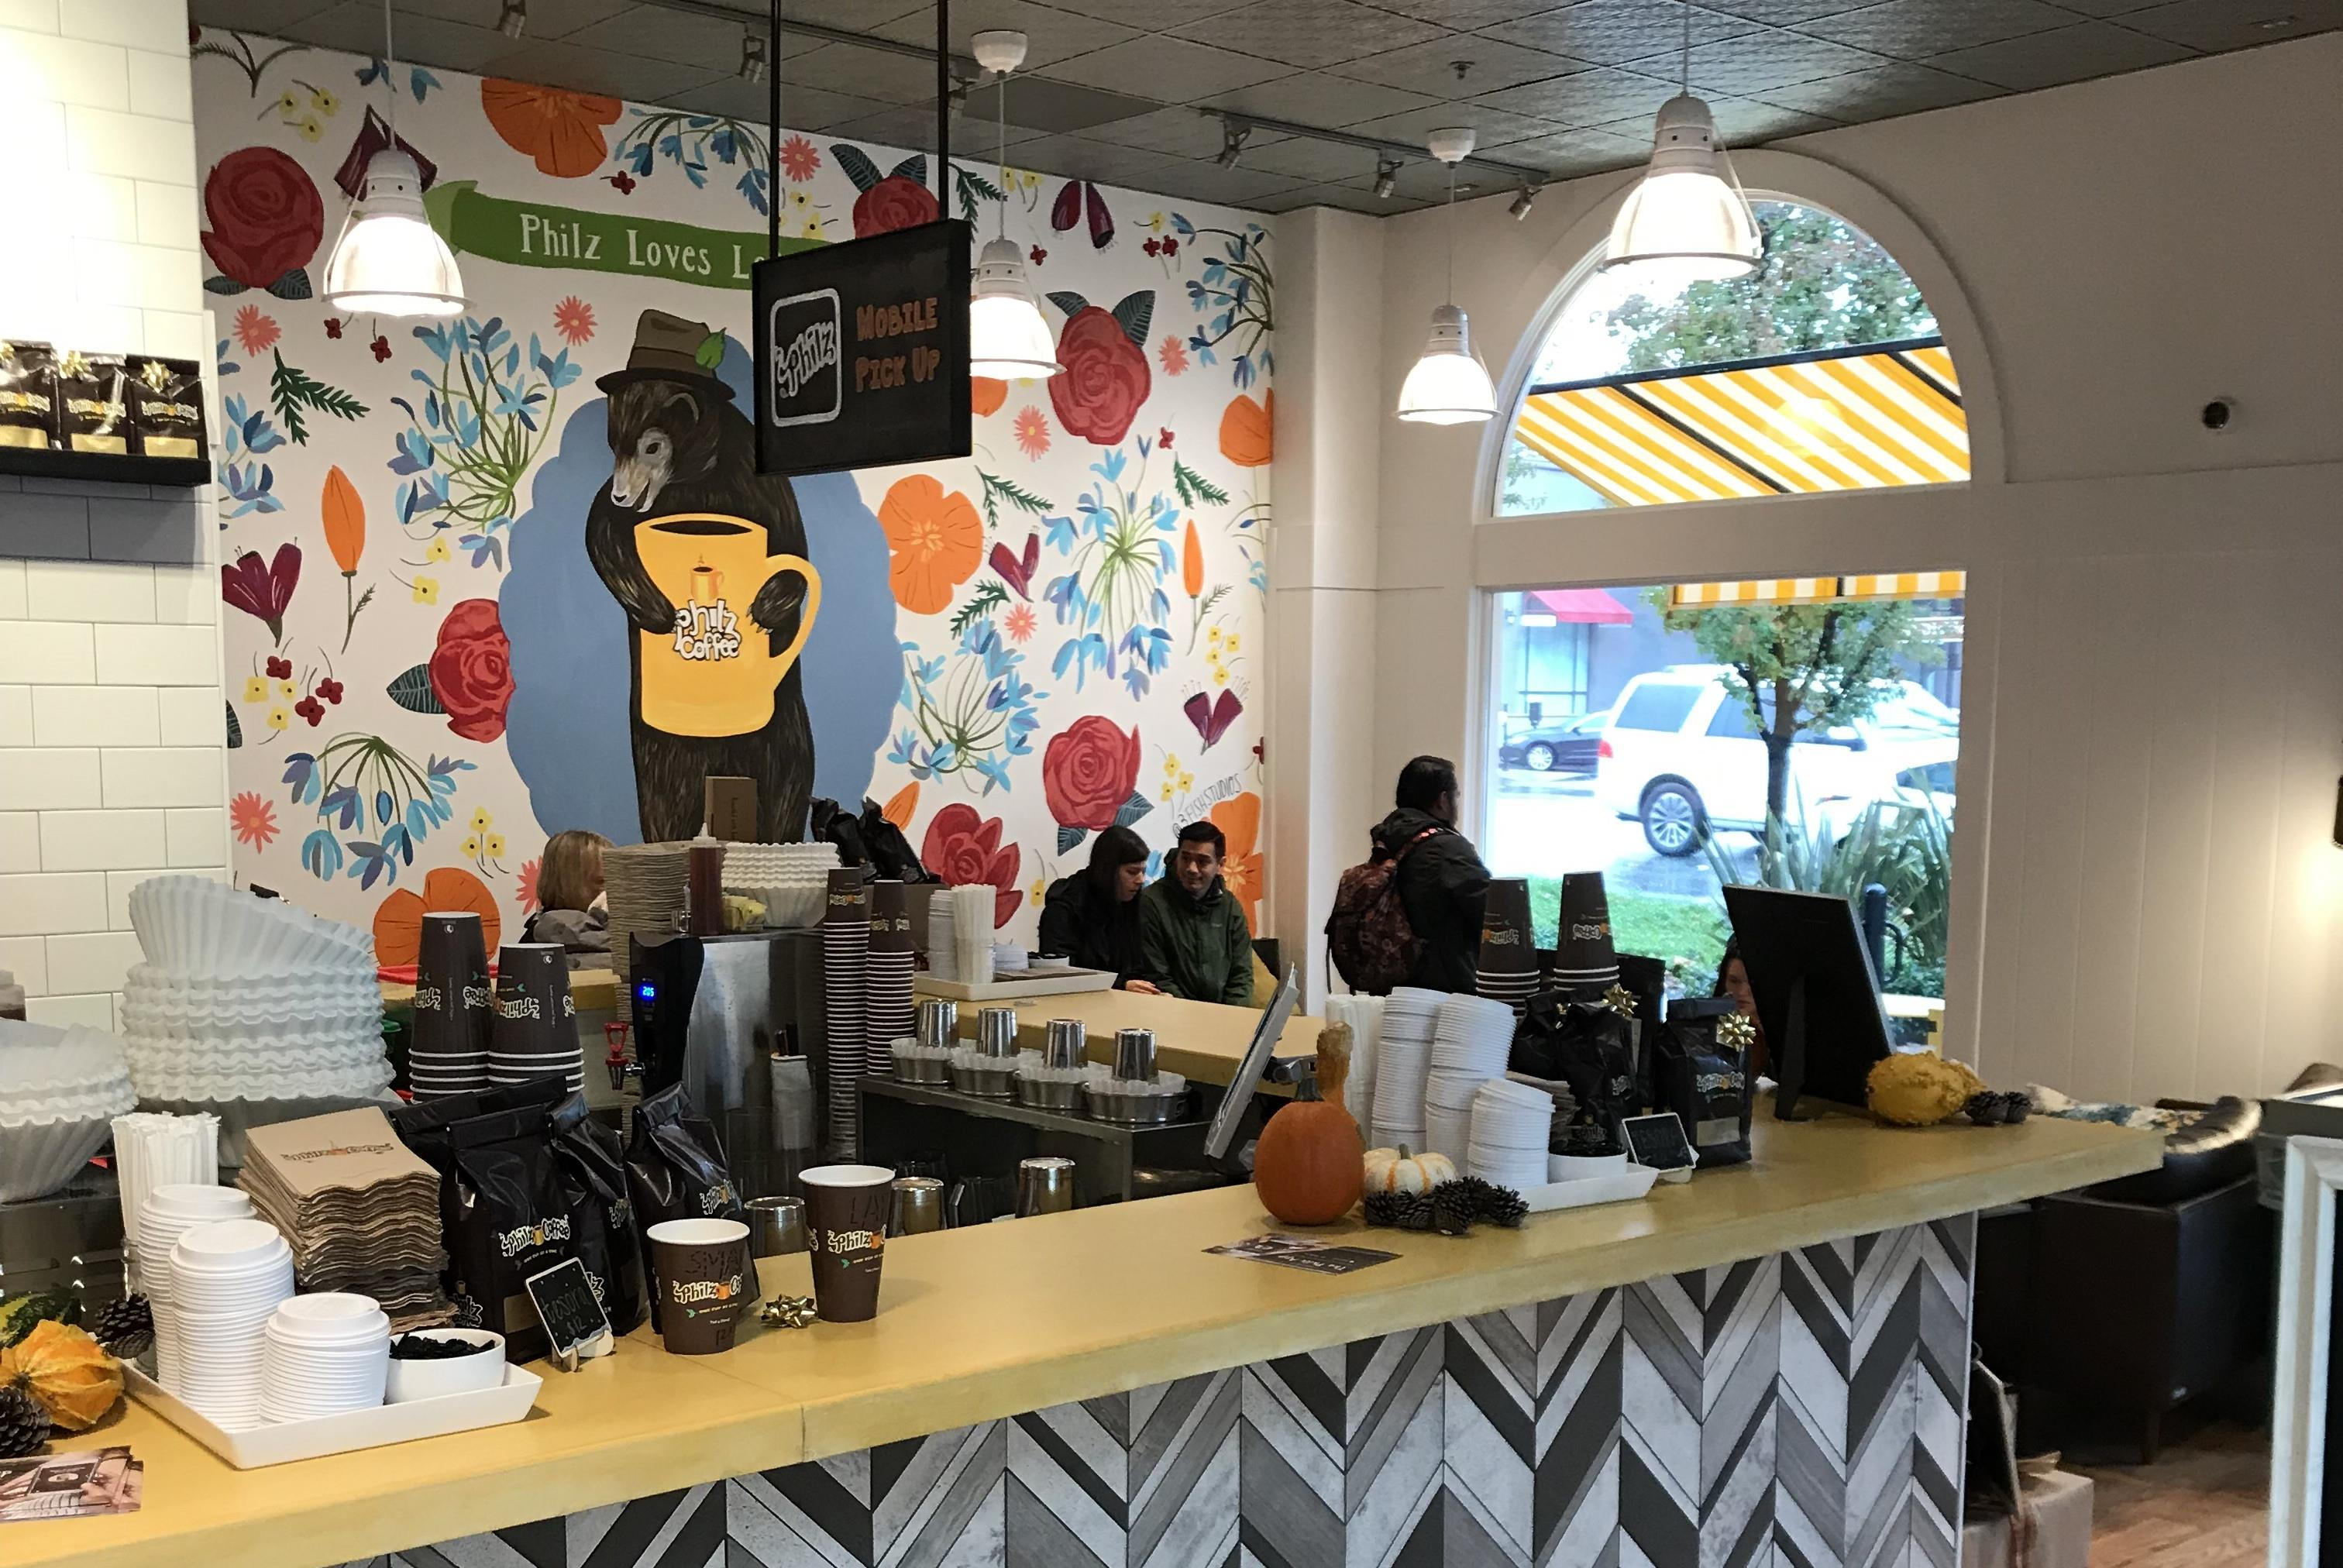 Philz recently opened a store in Lafayette, California, that features bright colors, patterns, and textures to match the vibrancy of the local community.